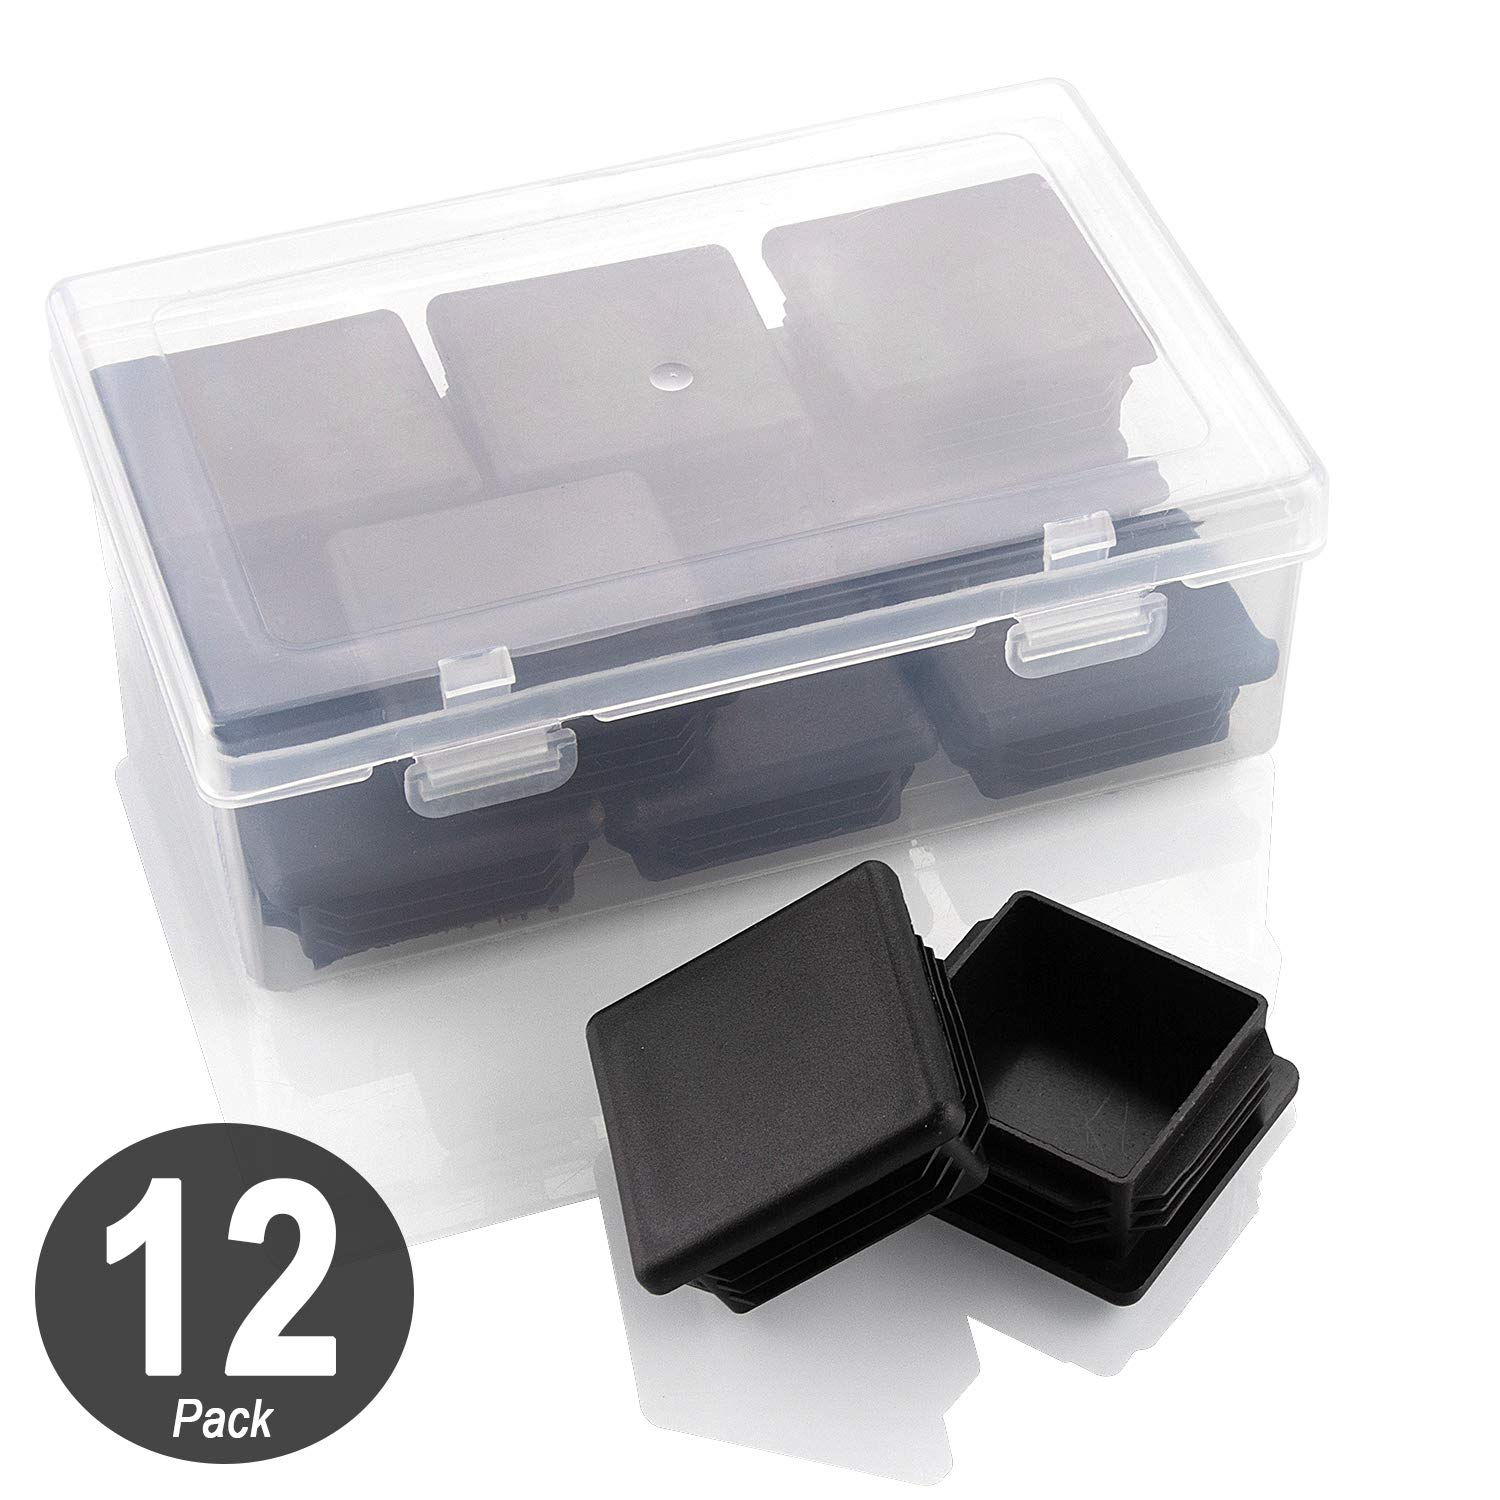 CenterZ 12pcs 1x1 inch Square Plastic Plug + Clear Storage Case, Black Quadrate Flush Mount Tubing End Cap, Durable Sliding Insert Glide, Tube Cover Plugs for Furniture, Table, Chair, Metal Fence Post